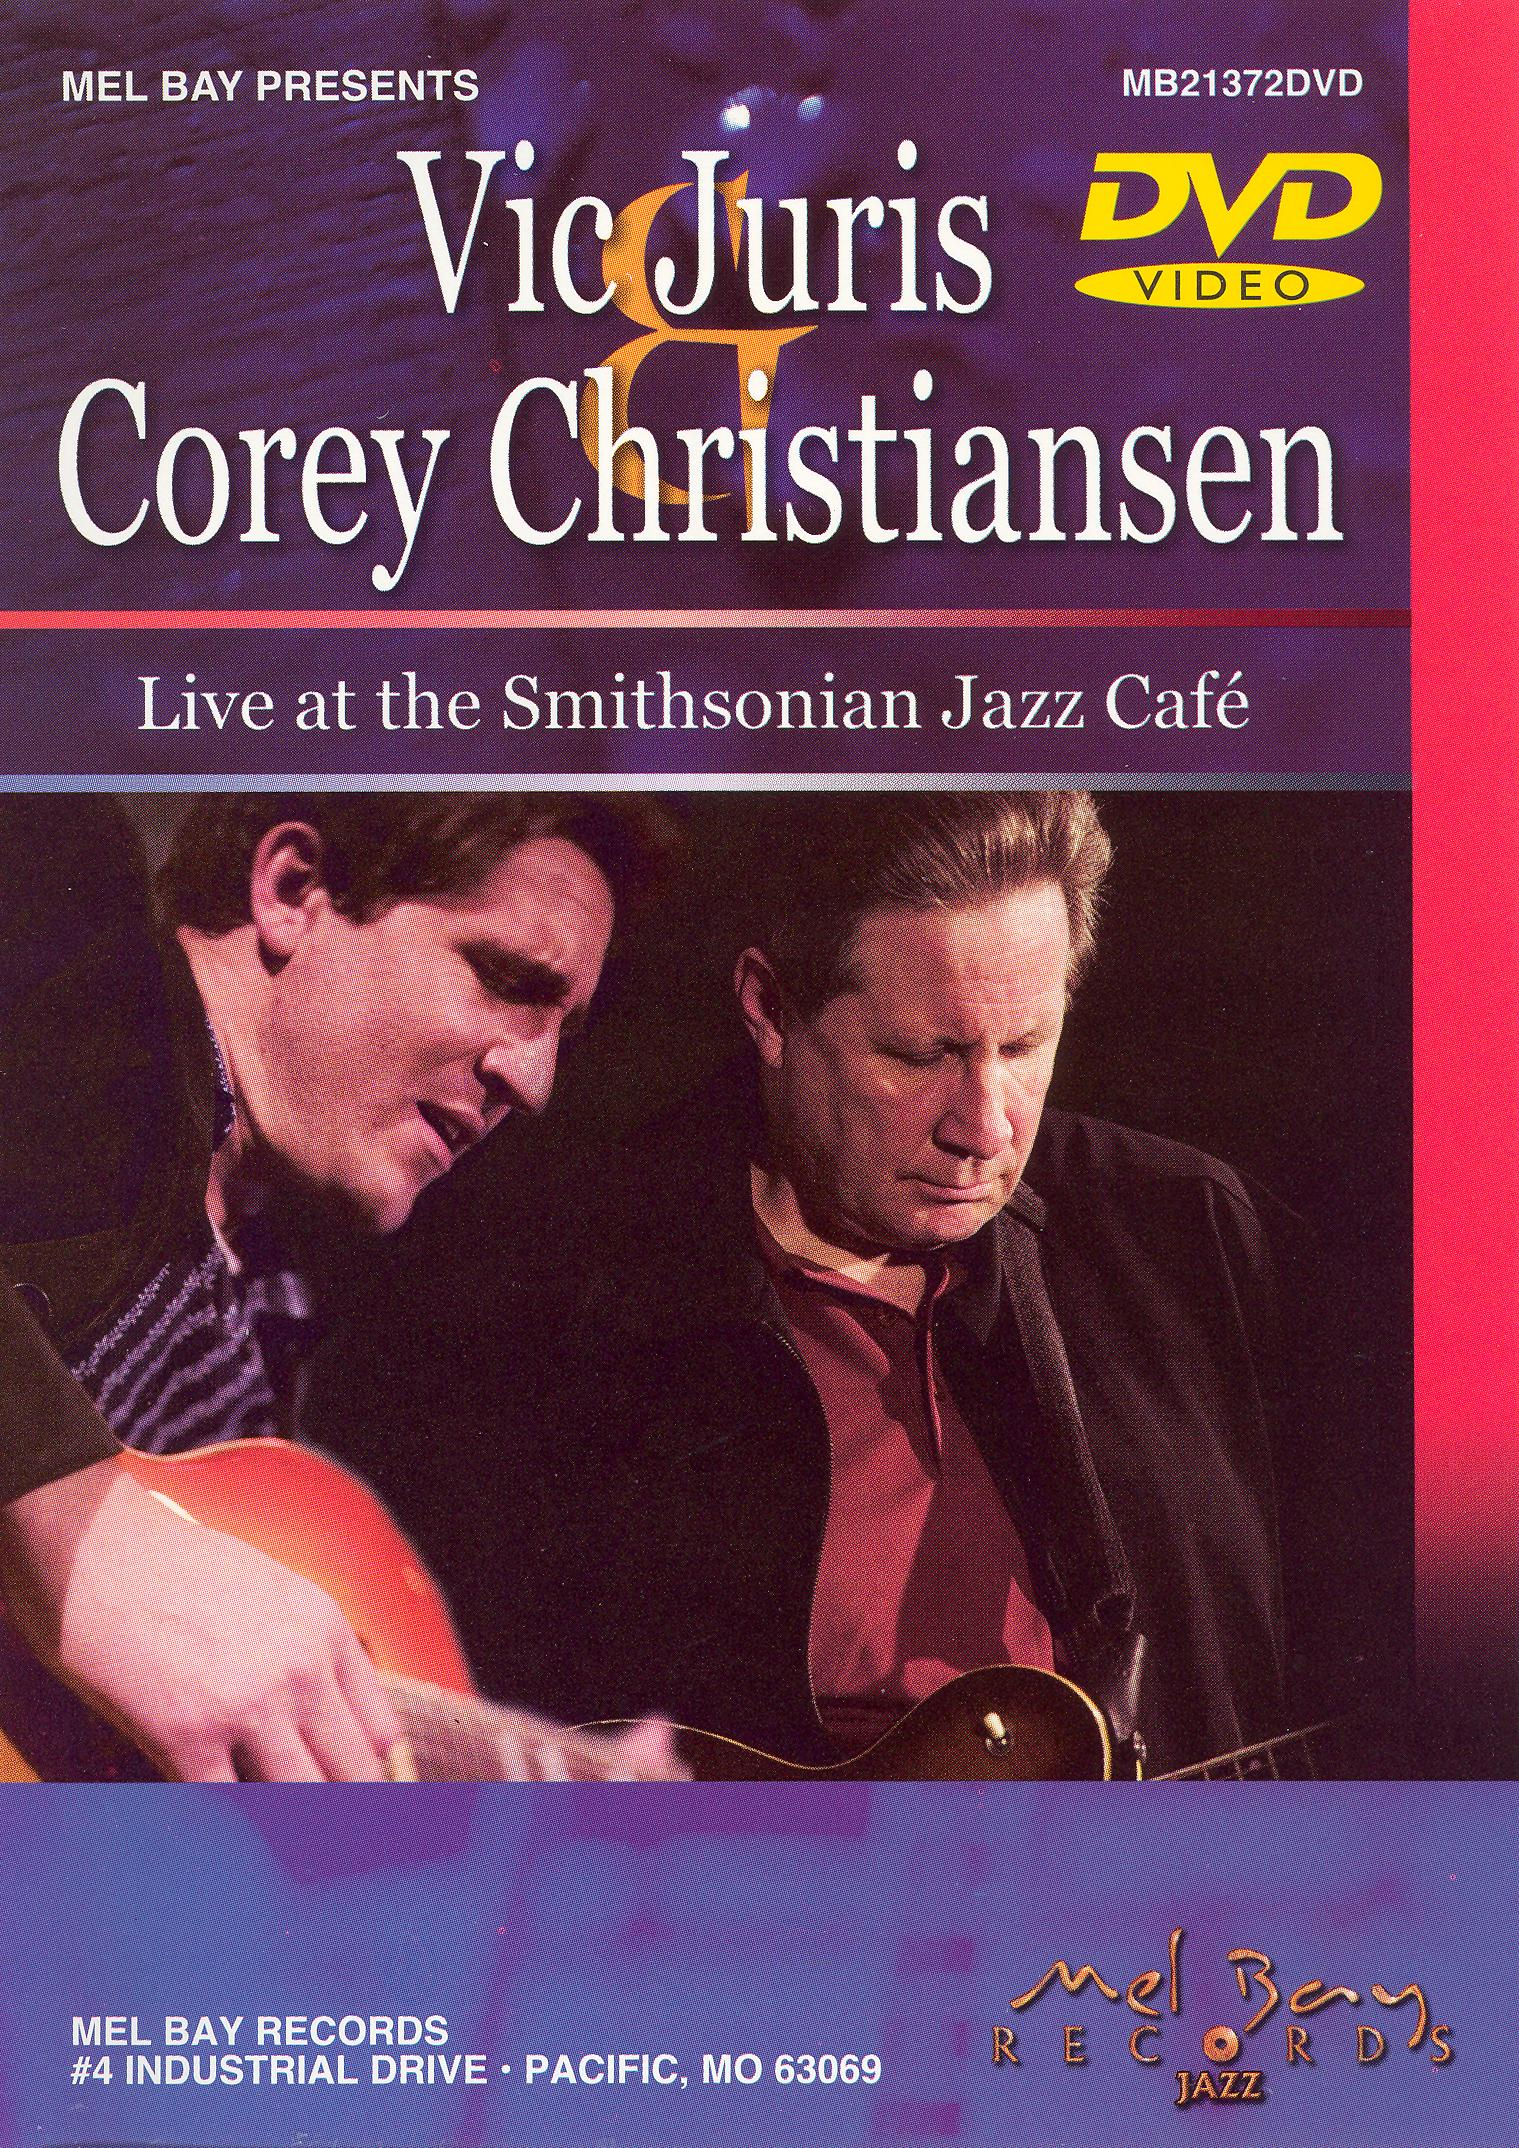 Vic Juris and Corey Christiansen: Live at the Smithsonian Jazz Cafe